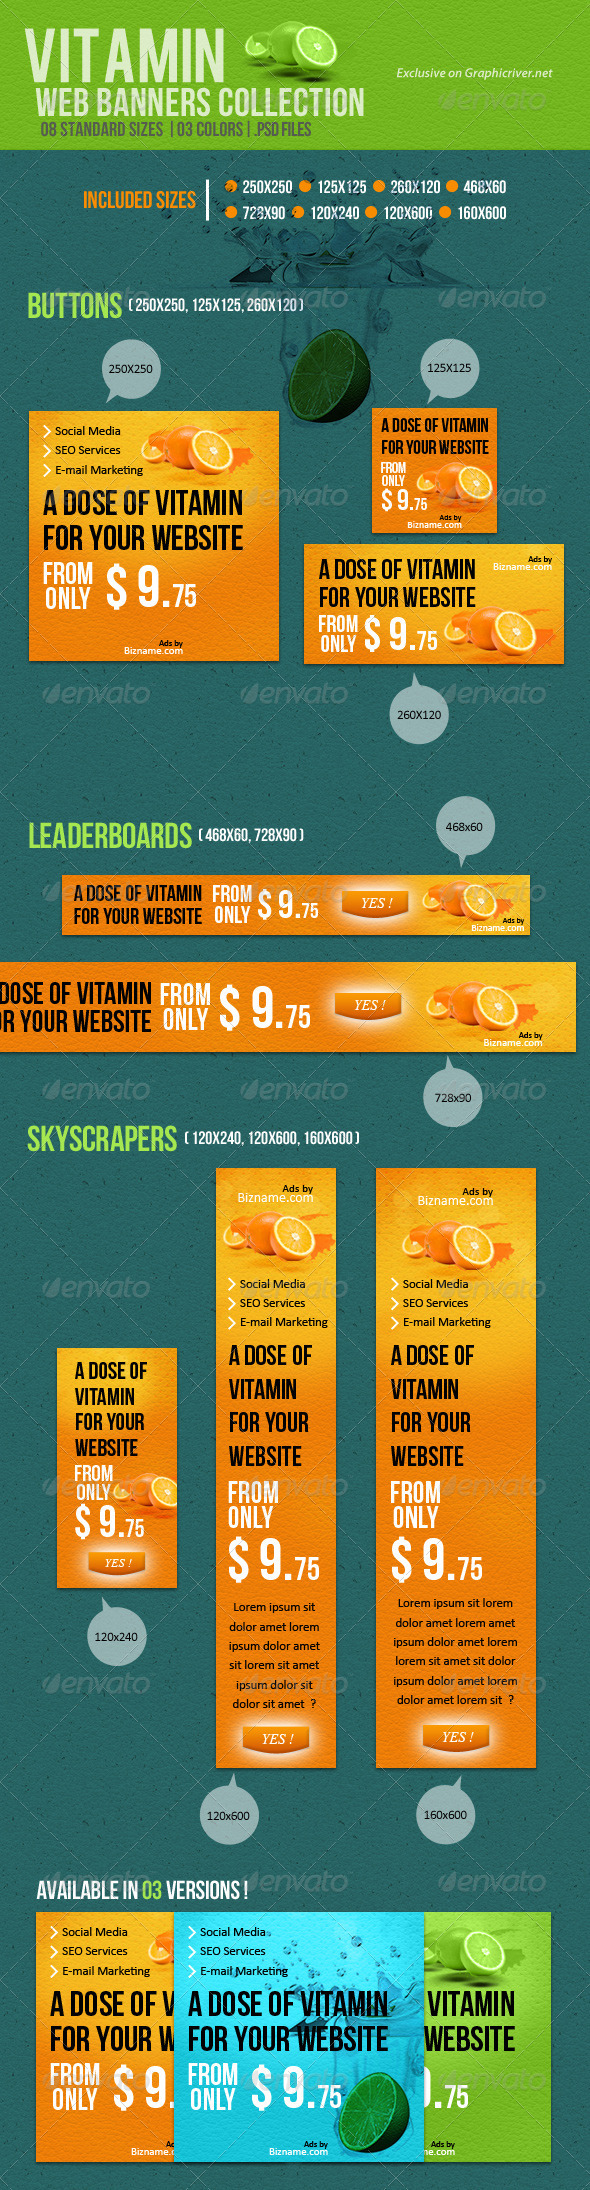 Vitamin Web Banners Collection - Banners & Ads Web Elements